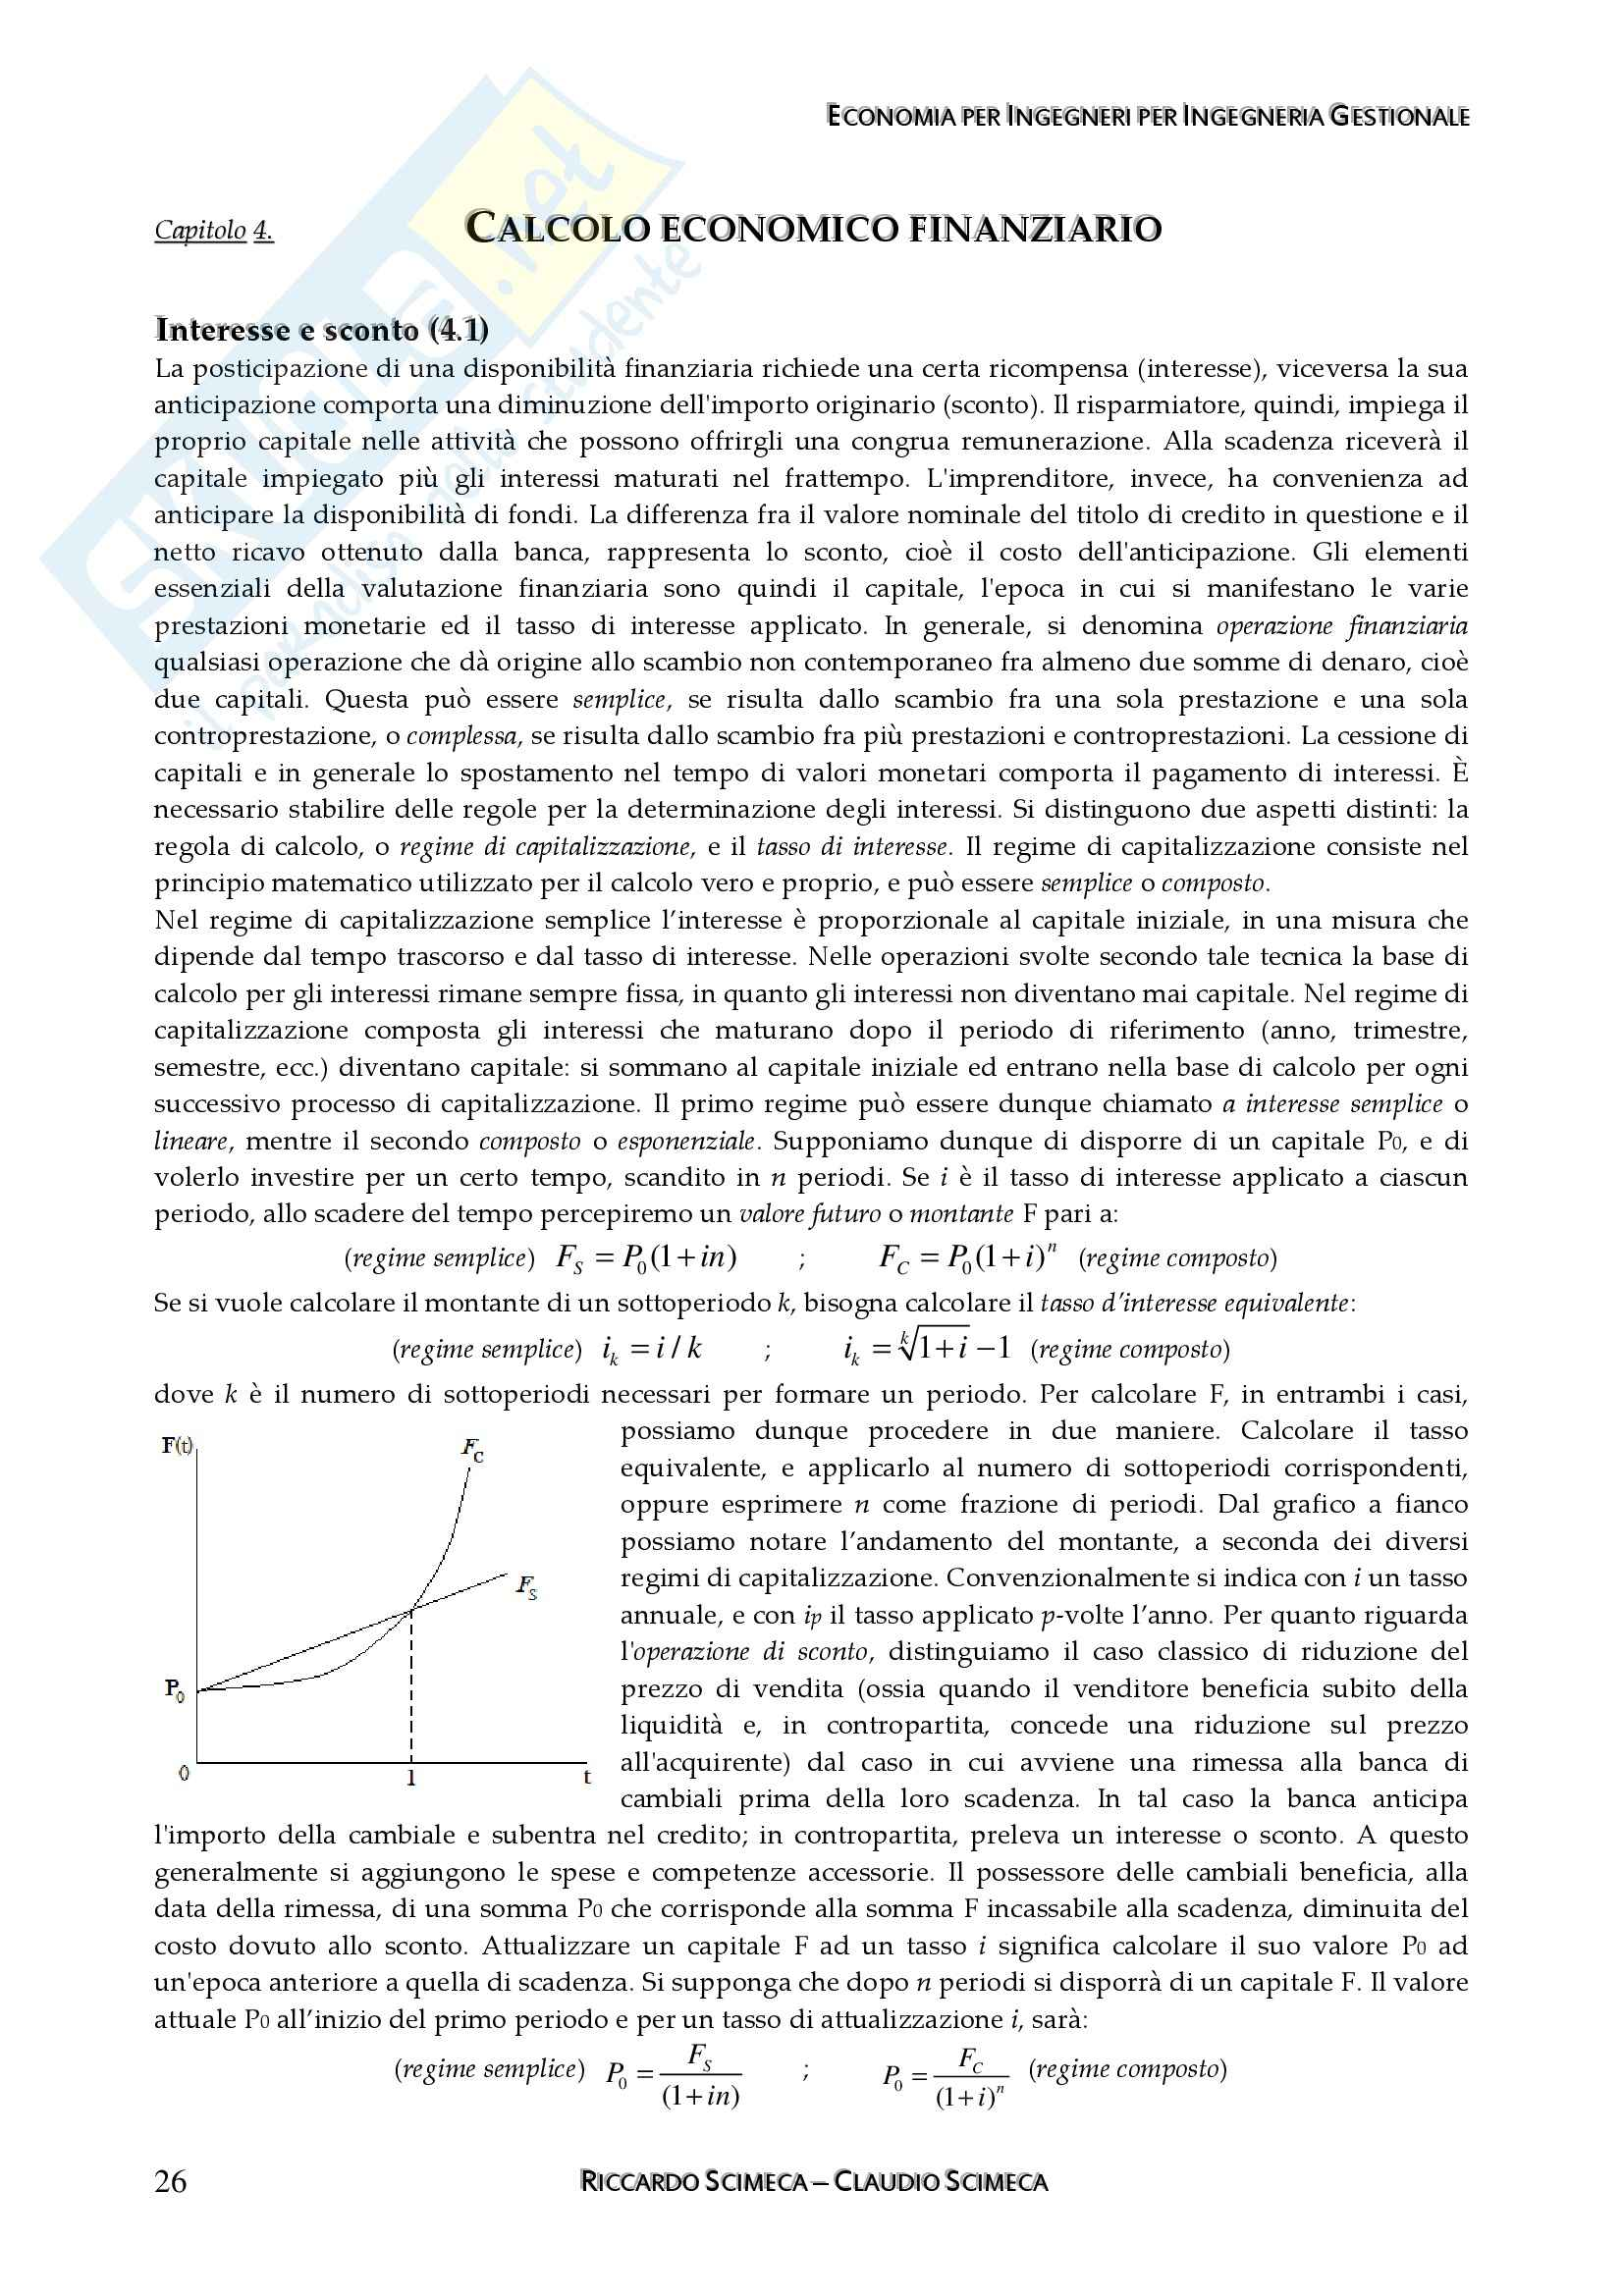 Economia applicata all'ingegneria - Appunti Pag. 26